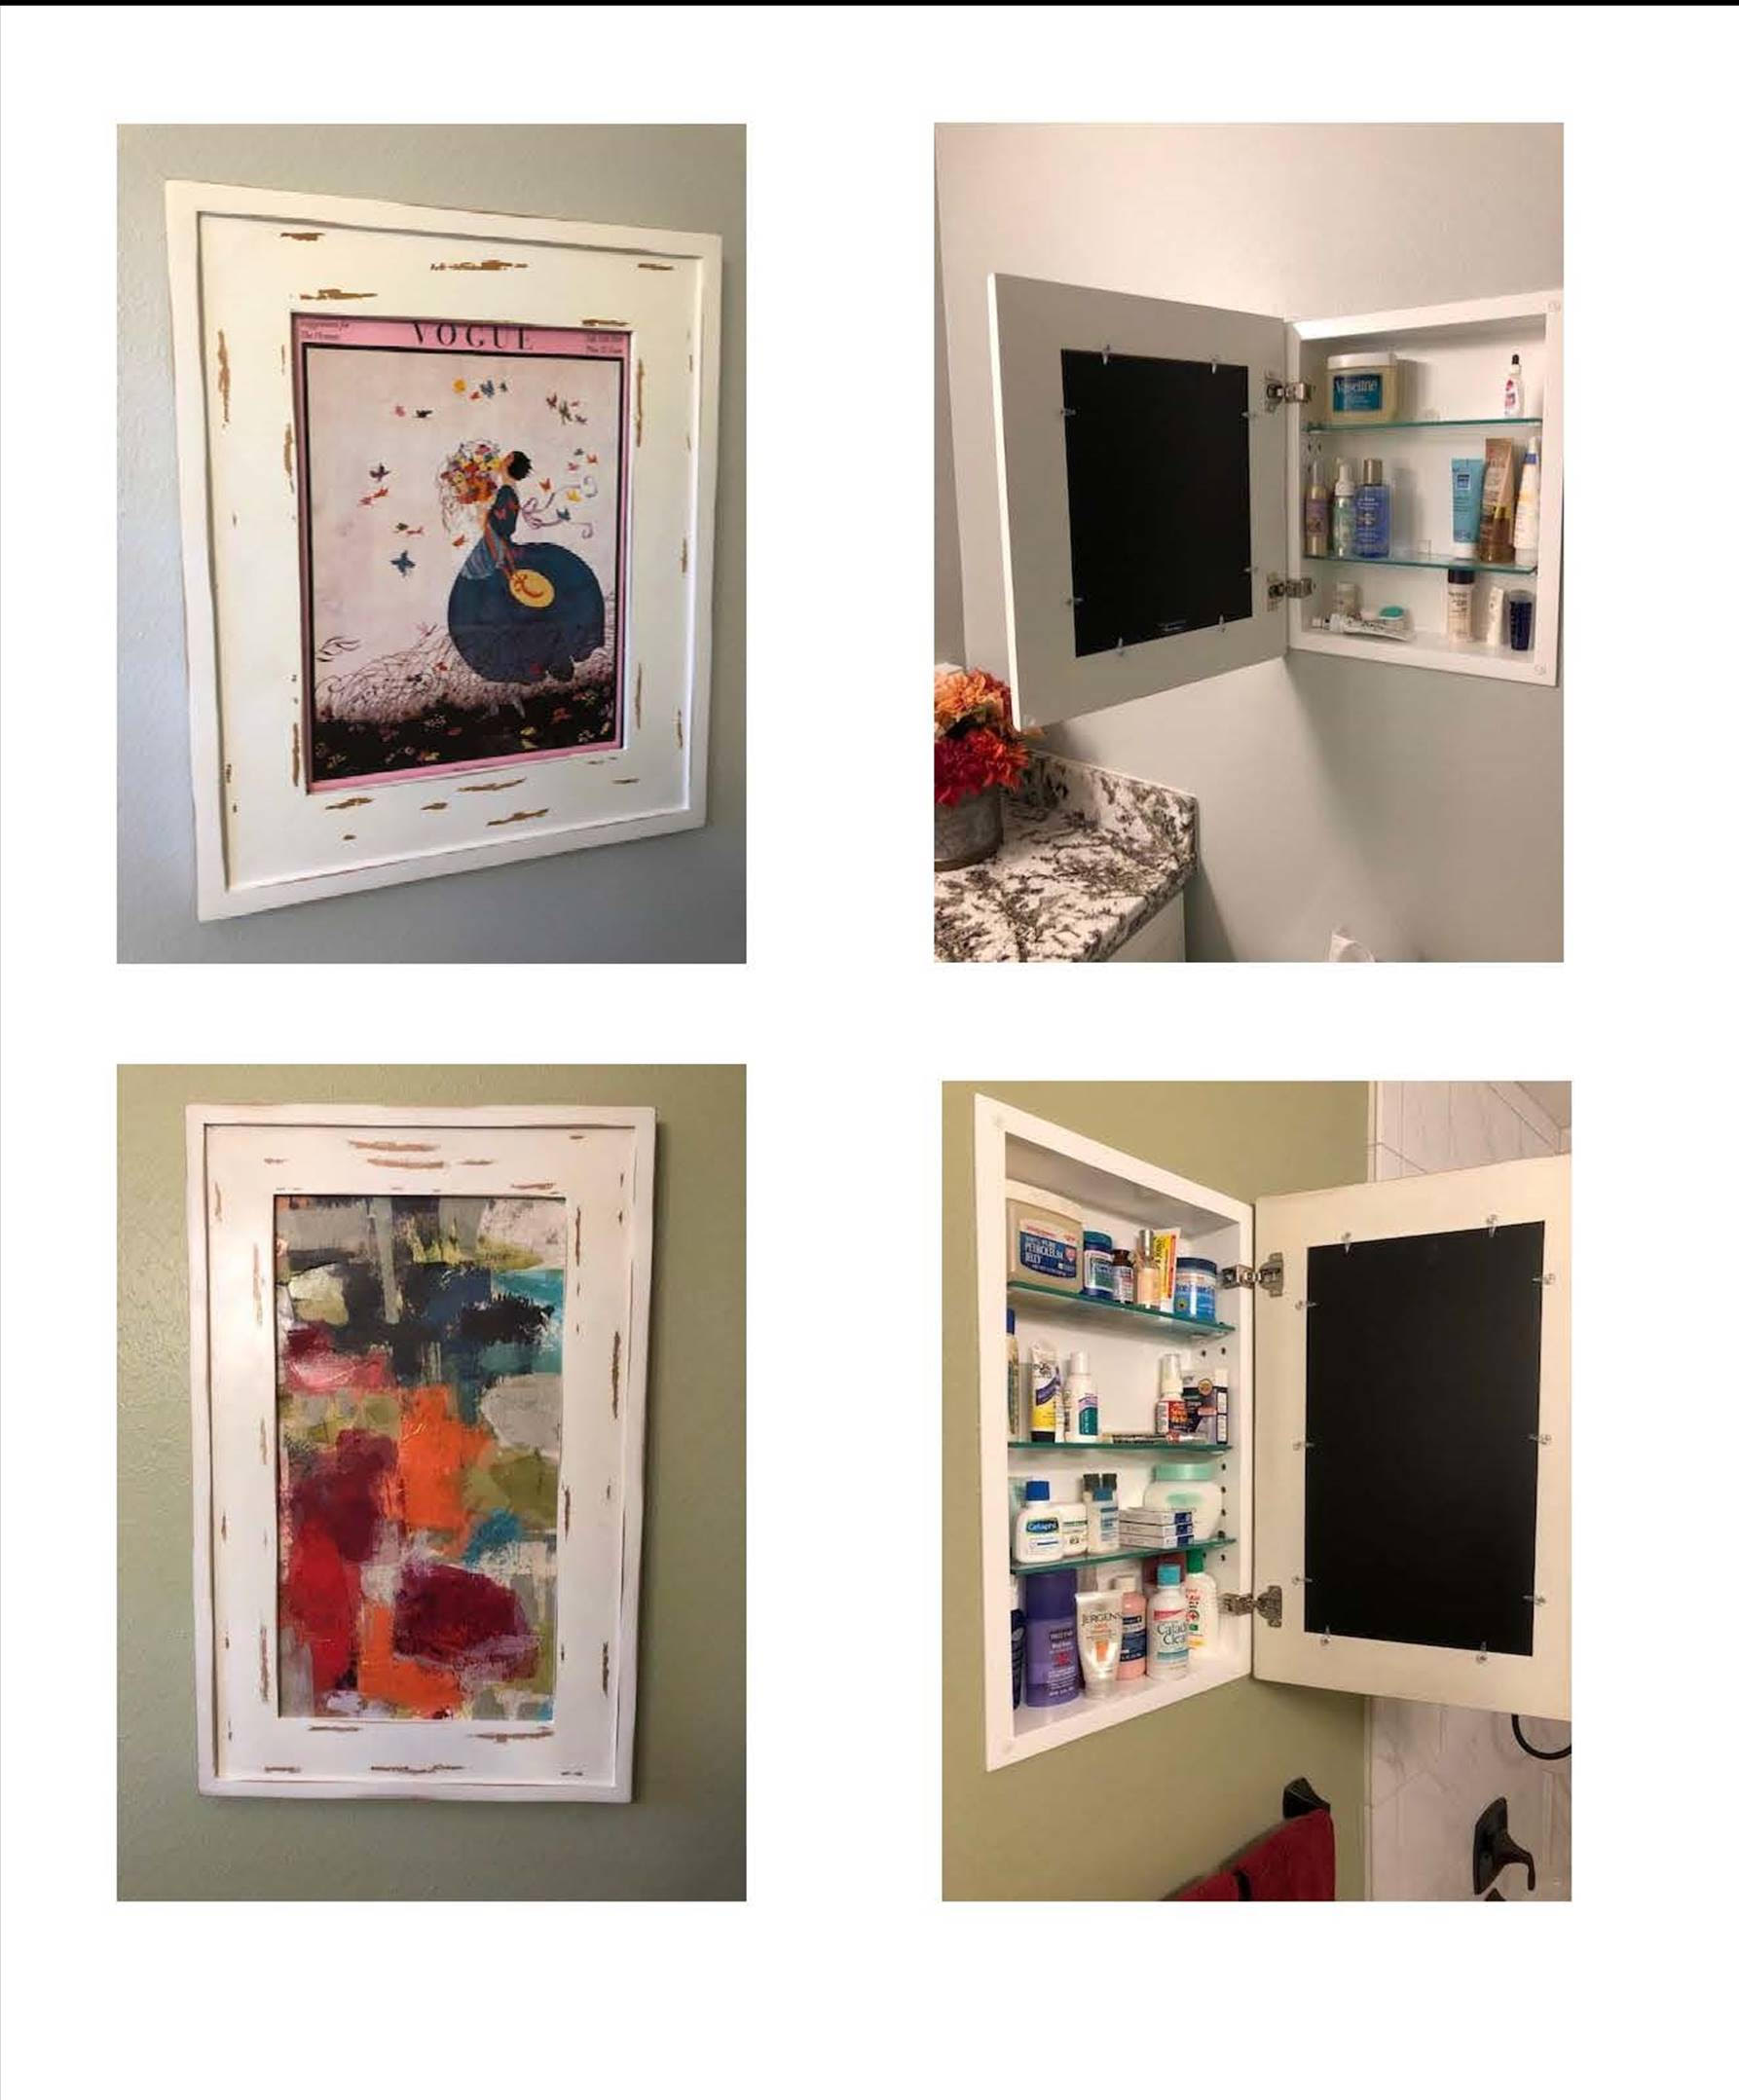 Recessed Shaving Cabinets Customer Photos Testimonial Reviews For The World S Only